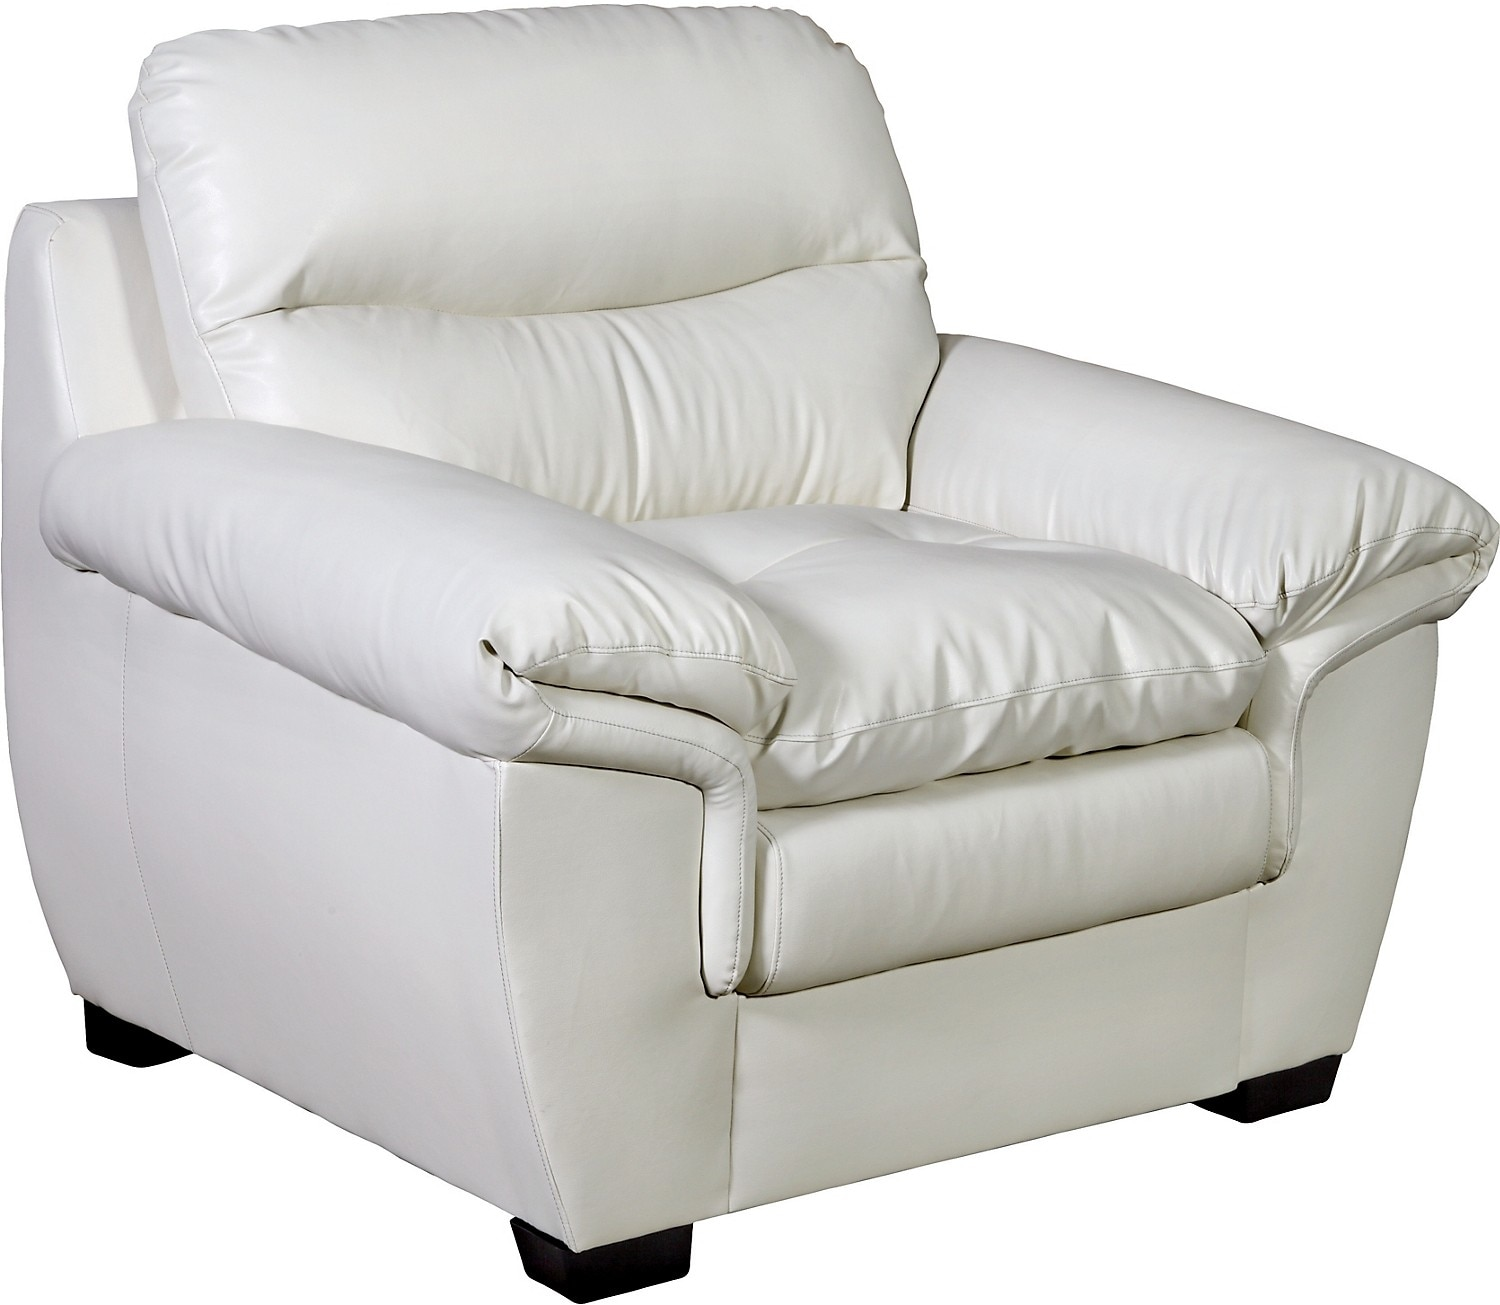 Living Room Furniture - E6 Cream Bonded Leather Chair